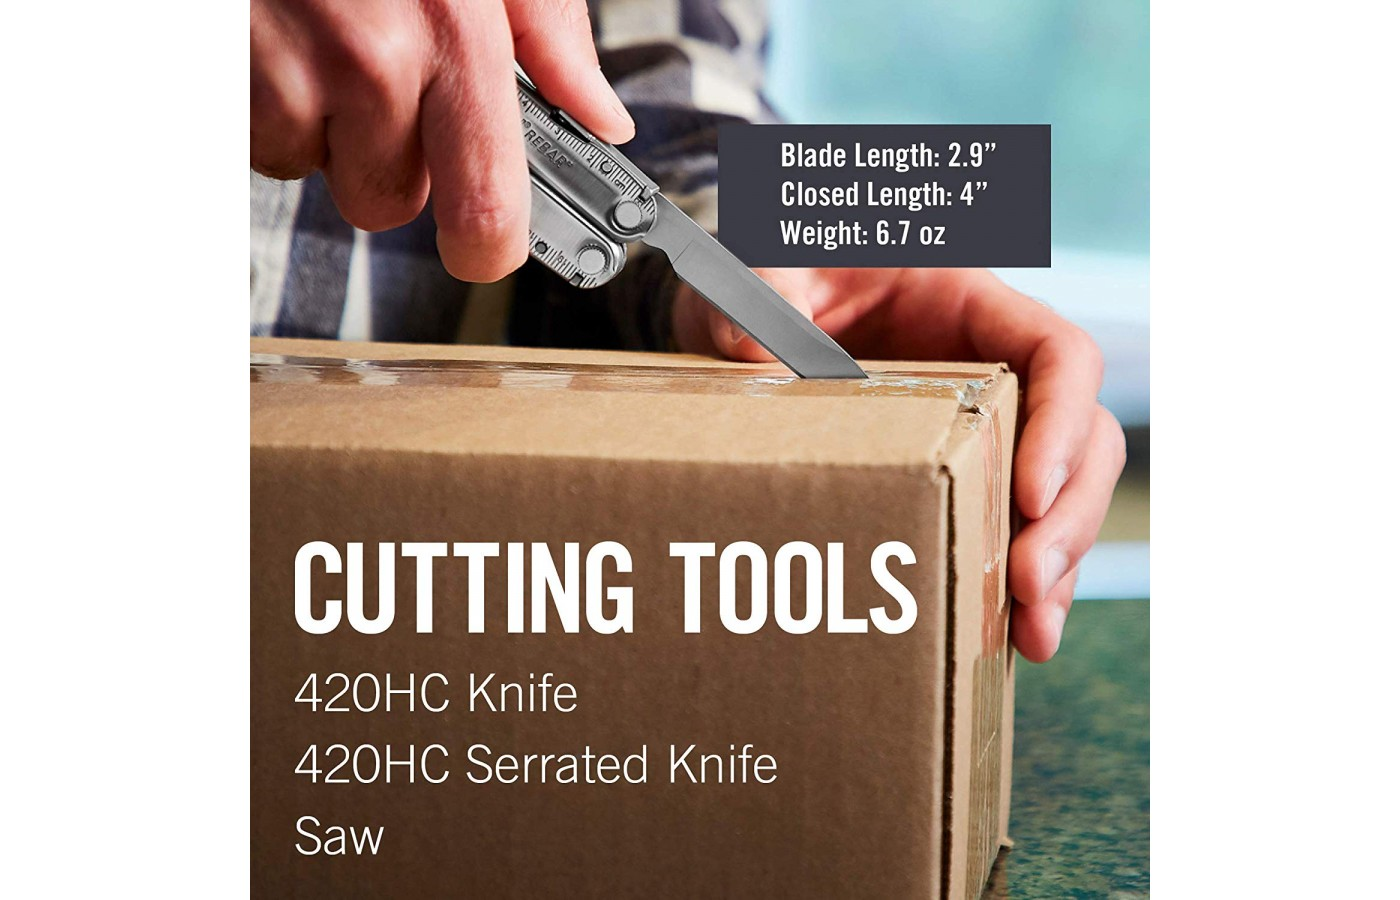 There are different cutting tools included with your Leatherman Rebar.